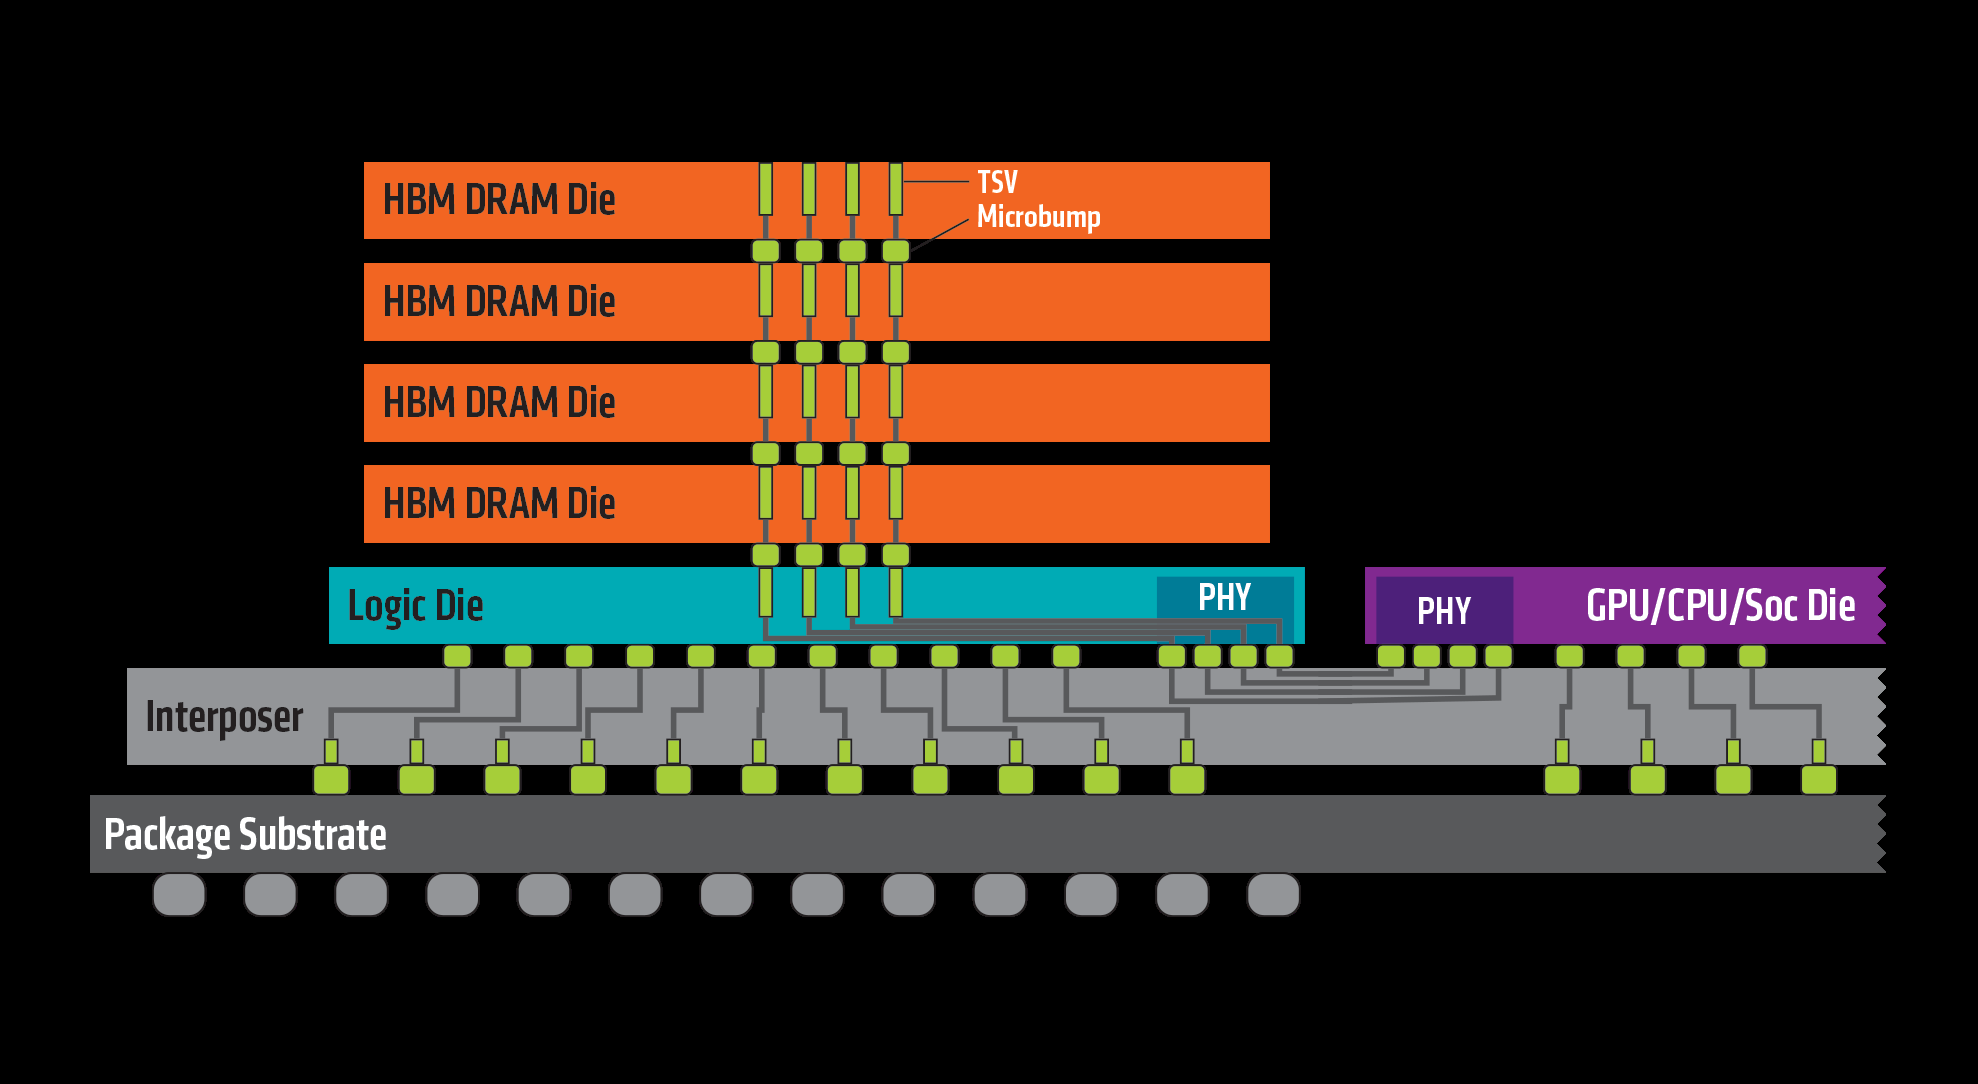 What is the difference between HBM (High Bandwidth Memory